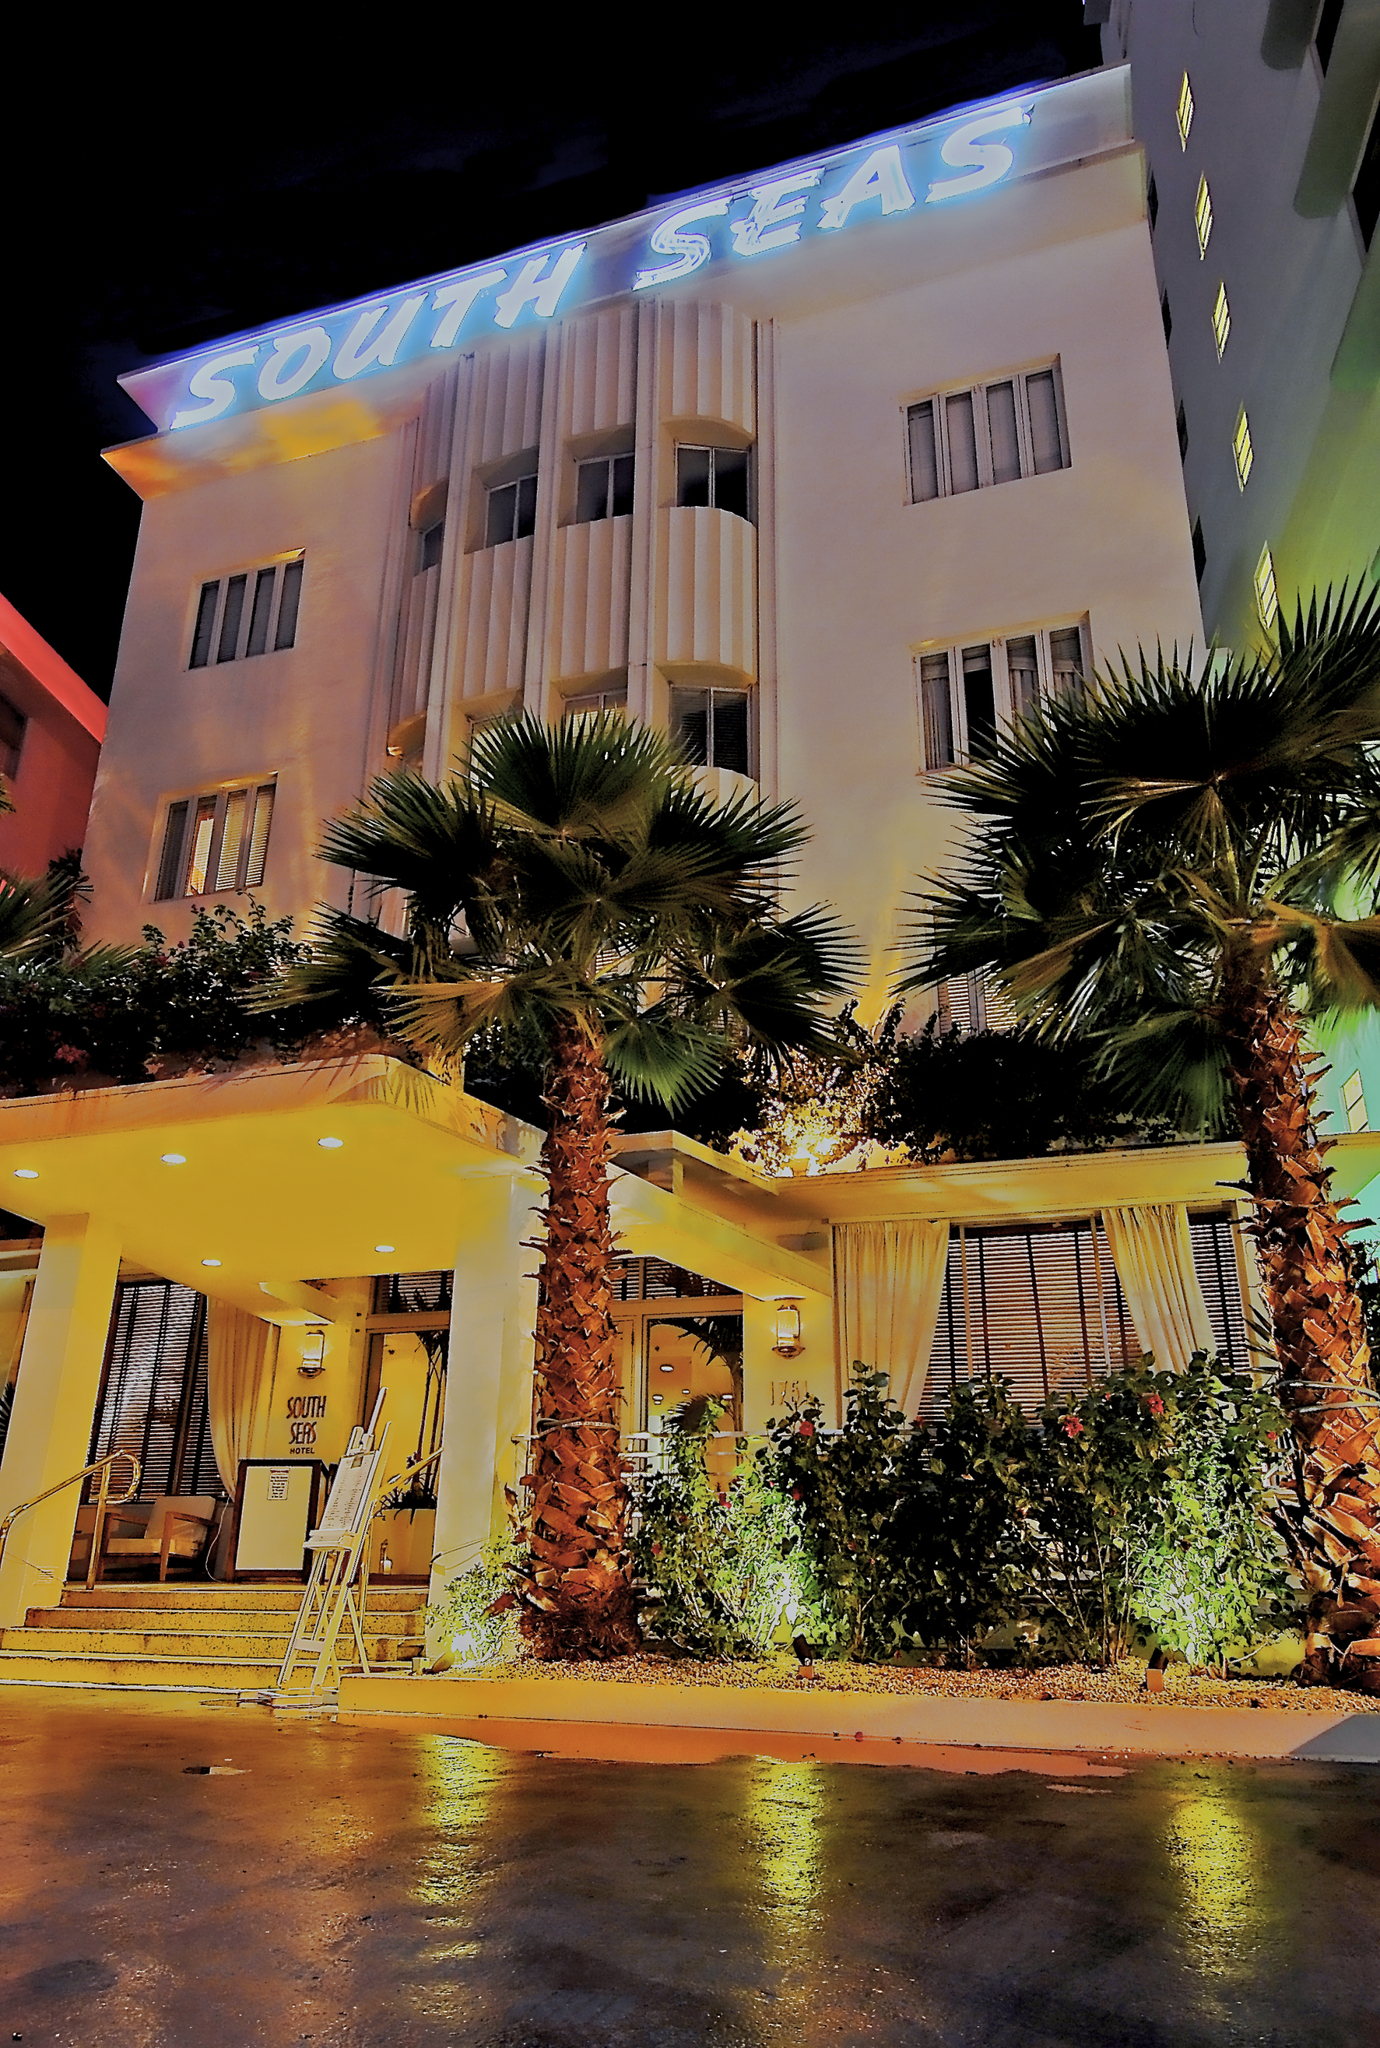 https://www.hotelsbyday.com/_data/default-hotel_image/2/13947/ss-exterior-at-night.jpg